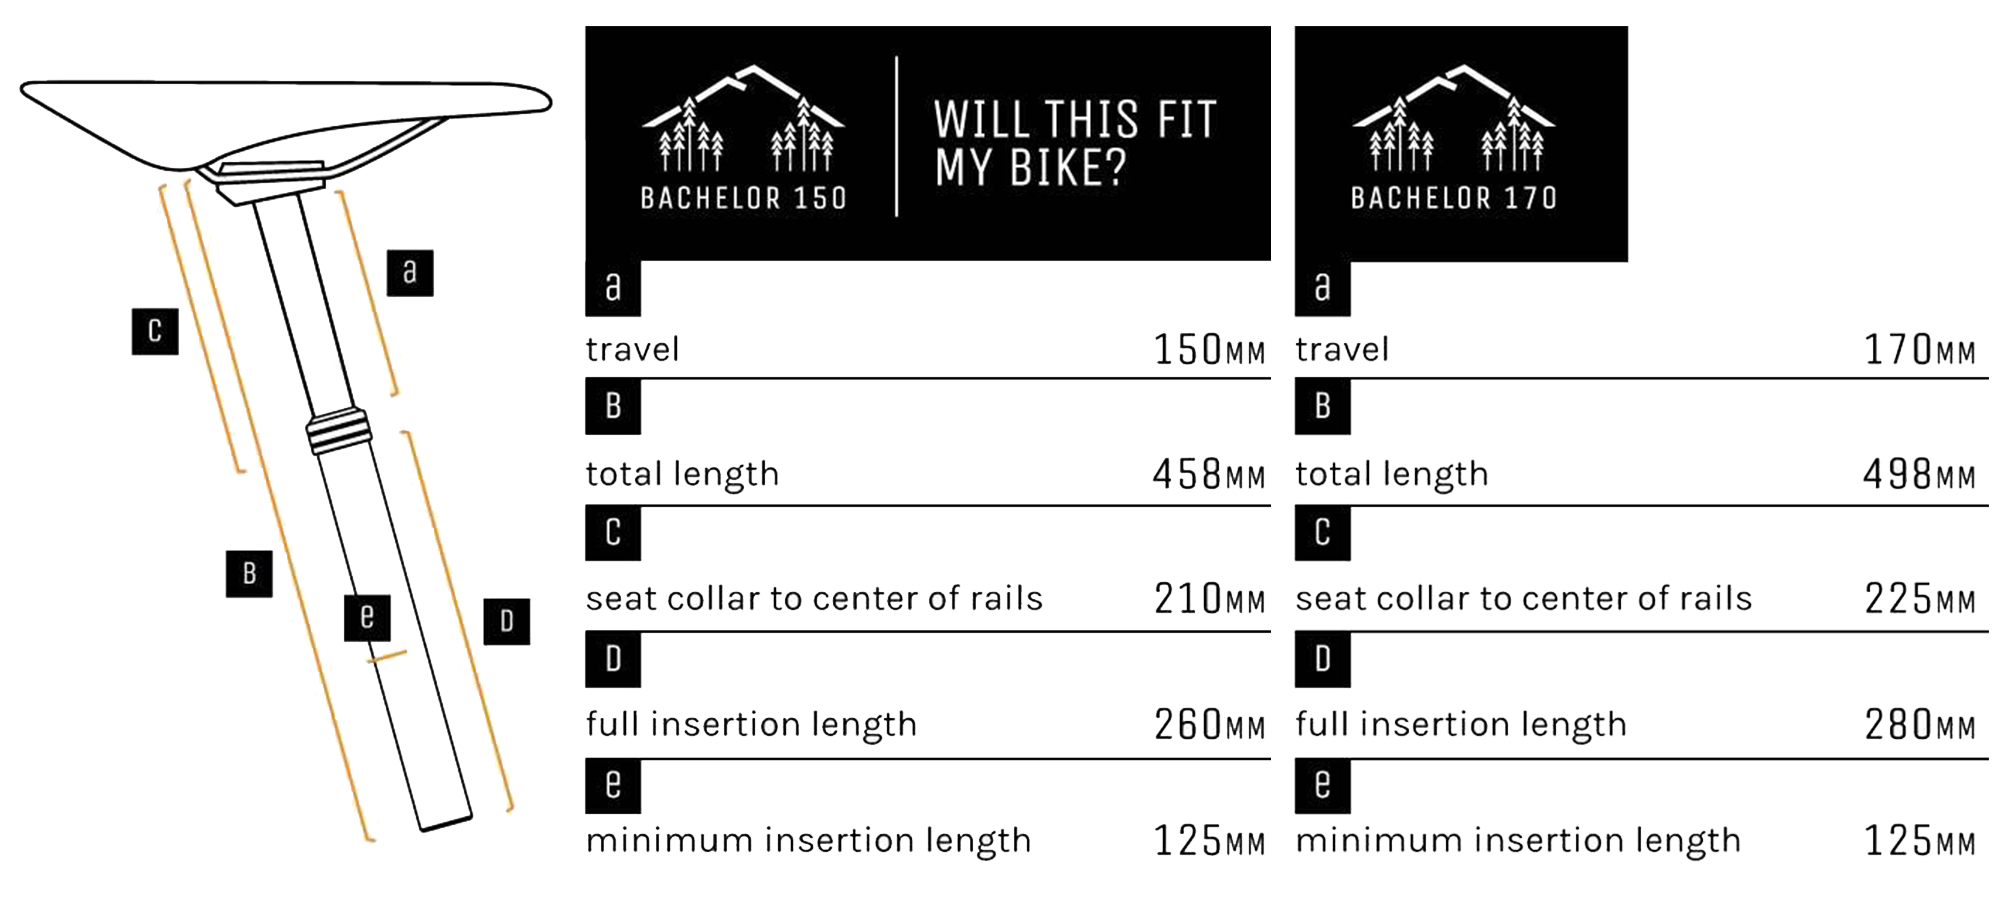 PNW Bachelor Dropper Seatpost Review